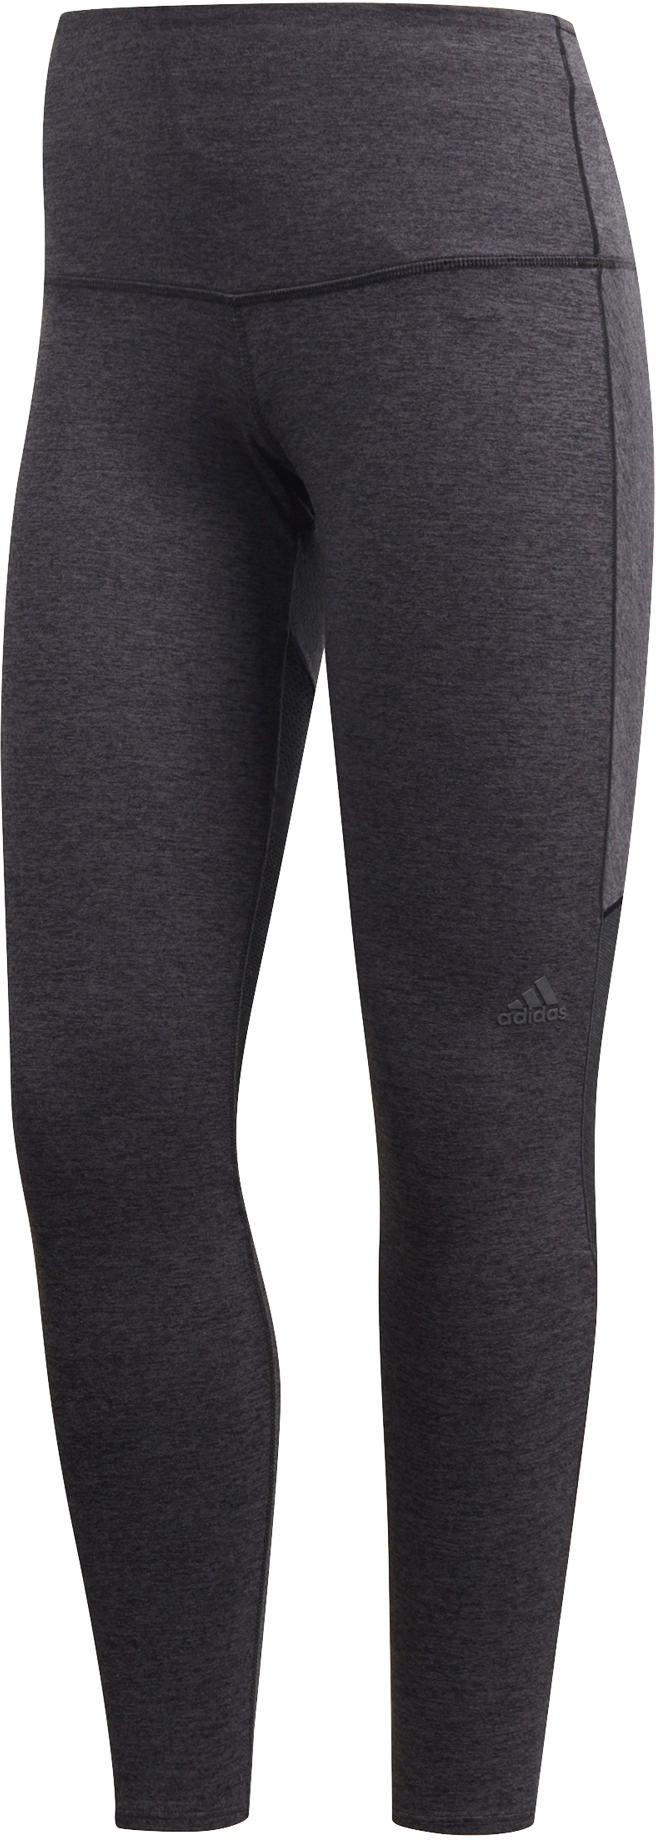 adidas Ultra 7/8 Tights - Dame | Trousers